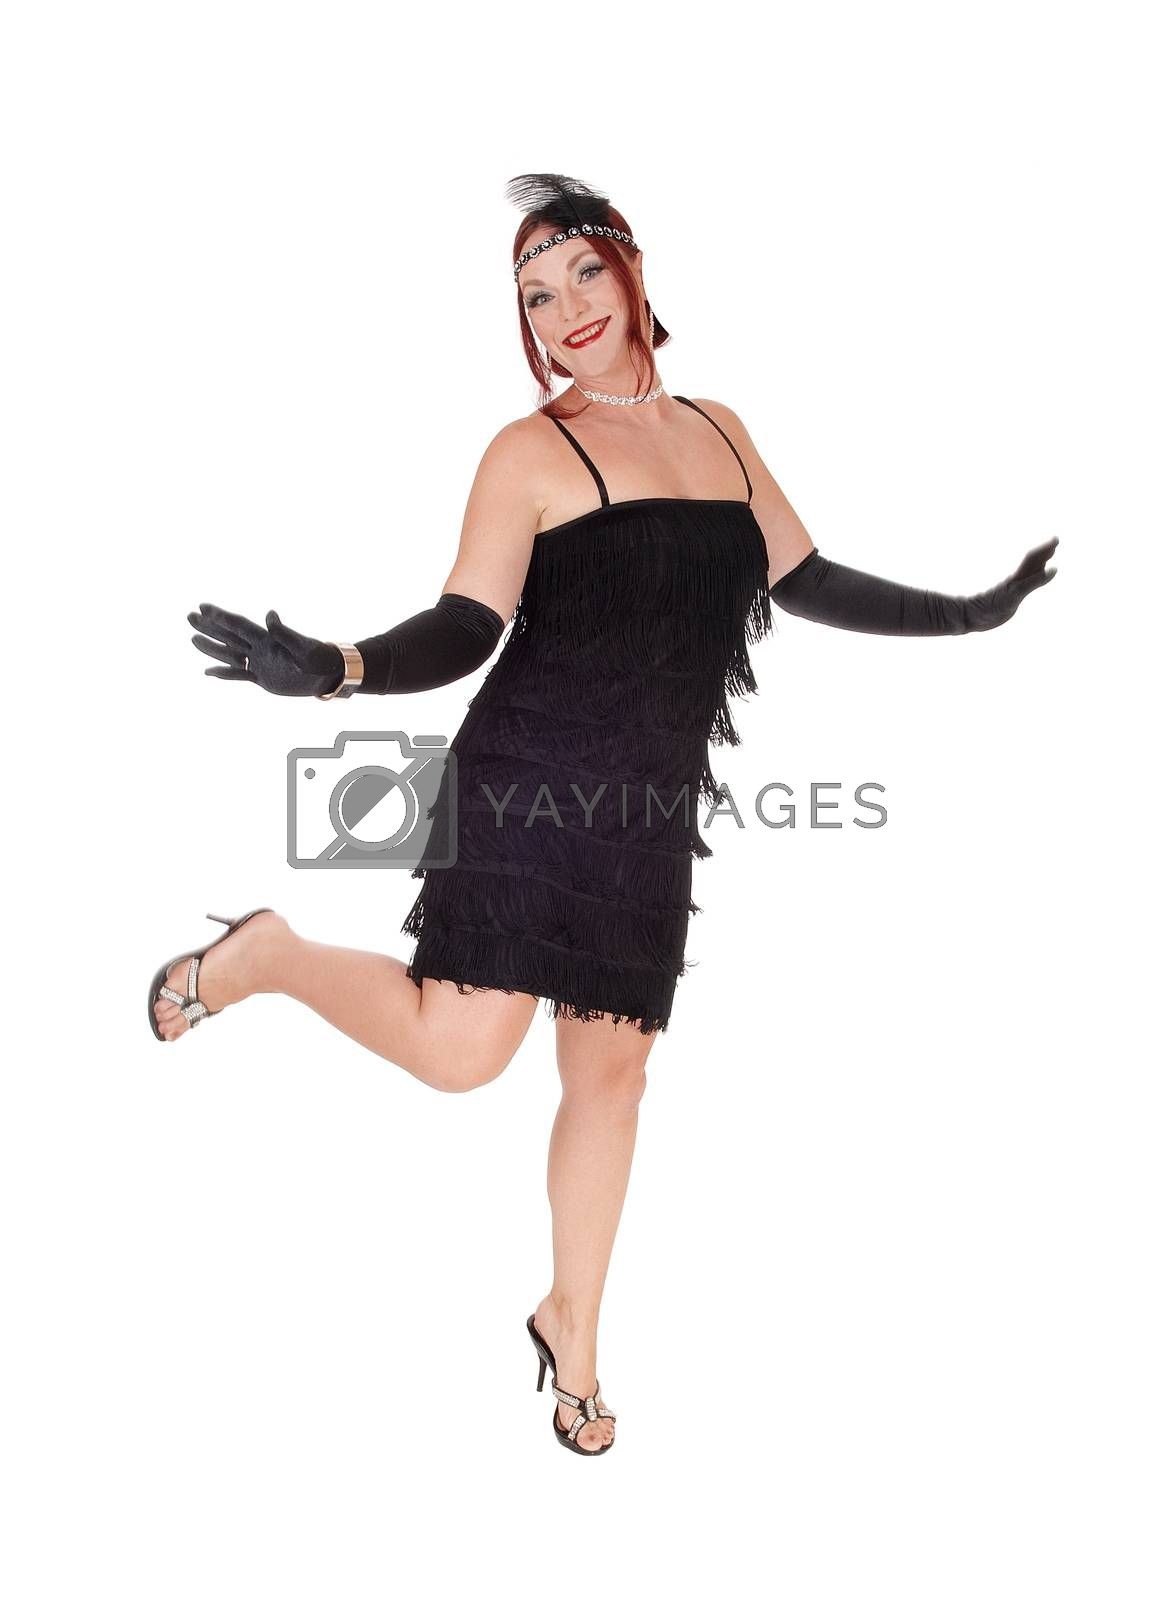 Royalty free image of Woman dancing in a black dress by feierabend